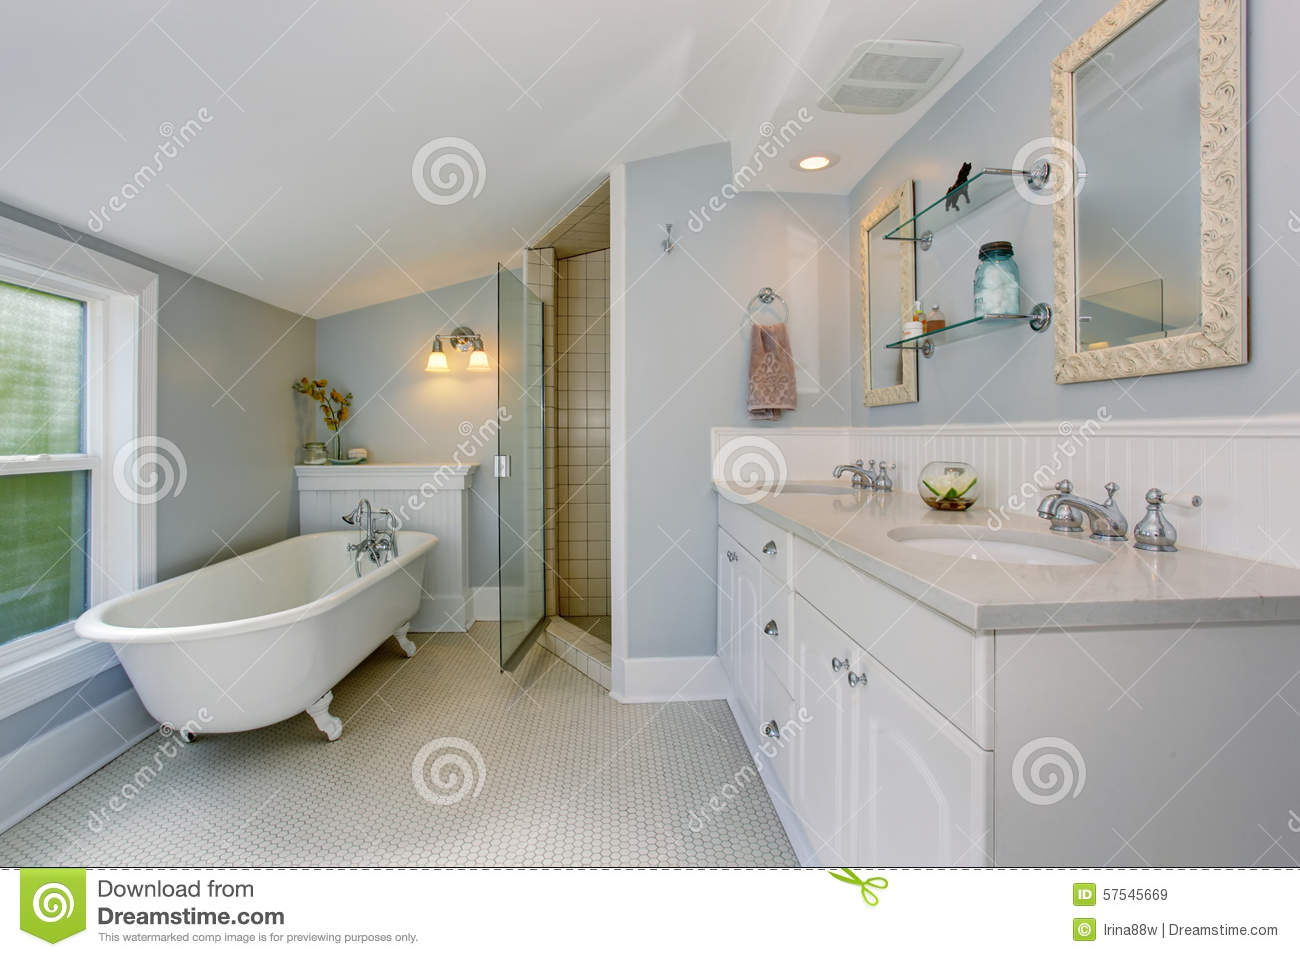 Famous Paint For Bathtub Tiny How To Paint A Tub Clean Paint Tub Tub Refinishers Old Painting Tub Brown Painting Bathtubs